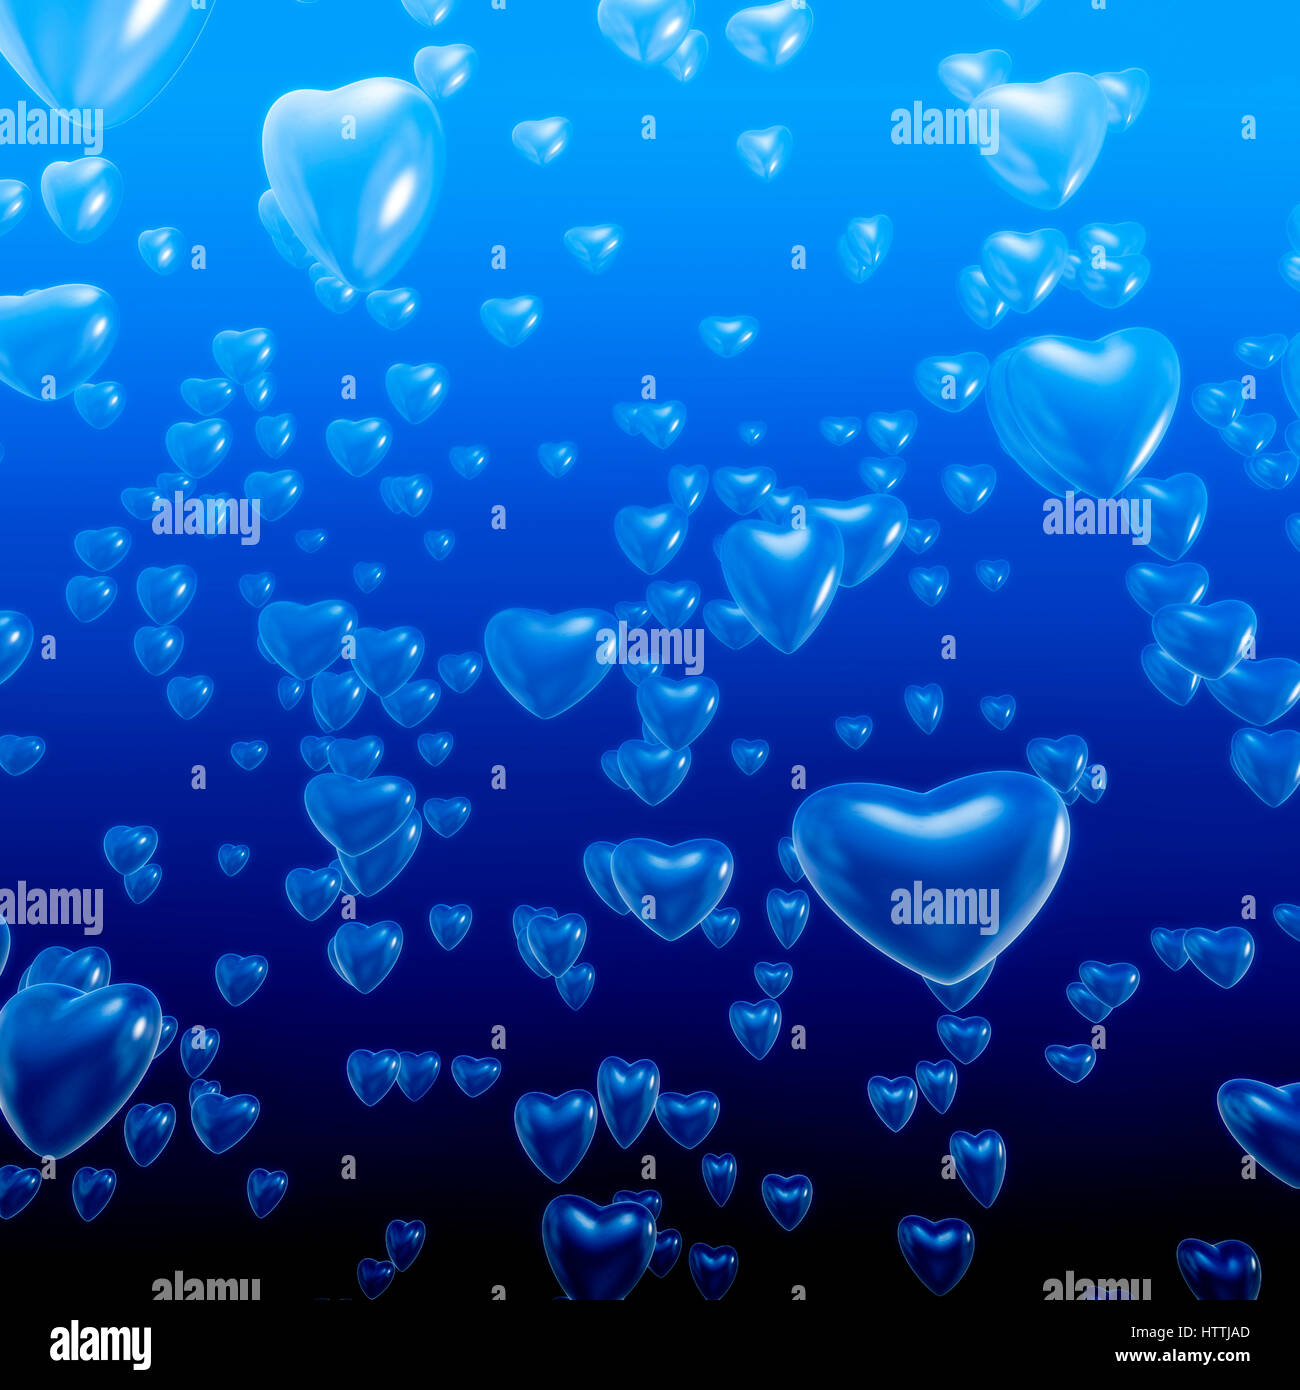 Heart bubbles underwater / 3D illustration of heart shaped bubbles rising toward ocean surface - Stock Image